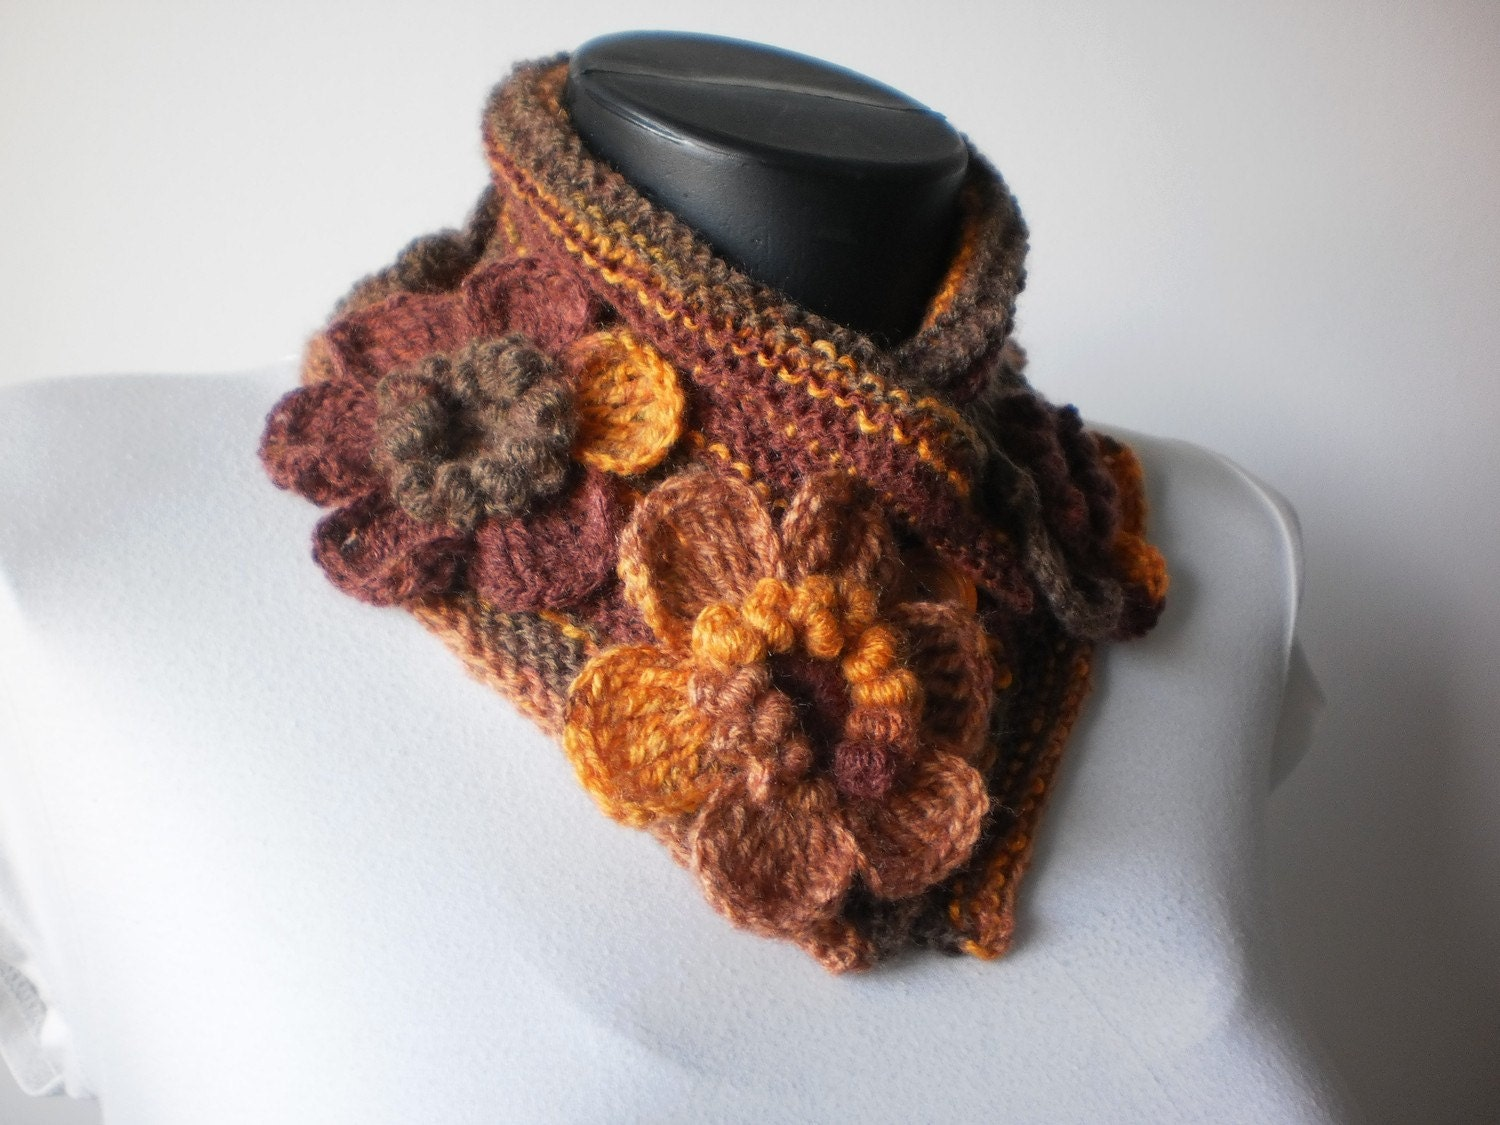 Crochet Patterns Neck Scarves : Crochet Scarf Cowl Scarf Autumn Accessories Neck Warmer Cowl Neck ...